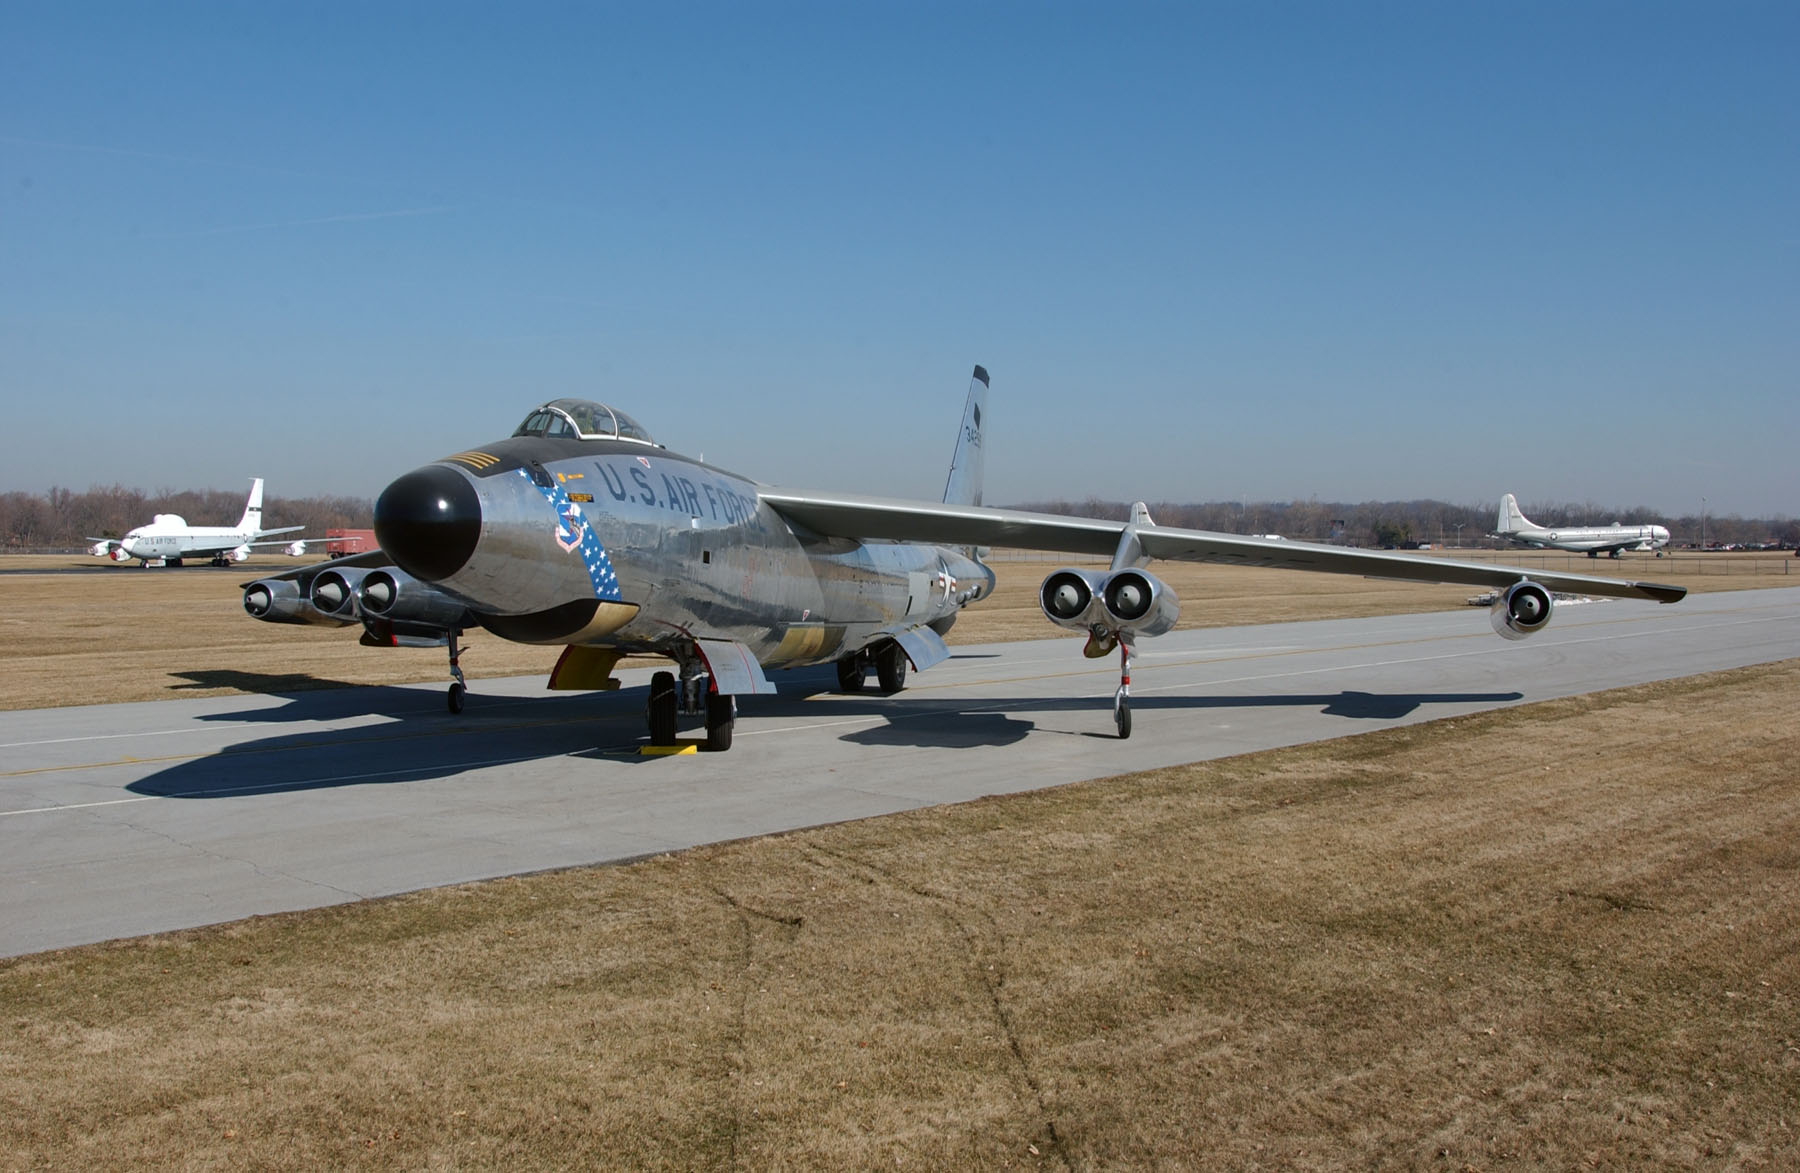 FileBoeing RBH At The National Museum Of The US Air Forcejpg - Us air force museum